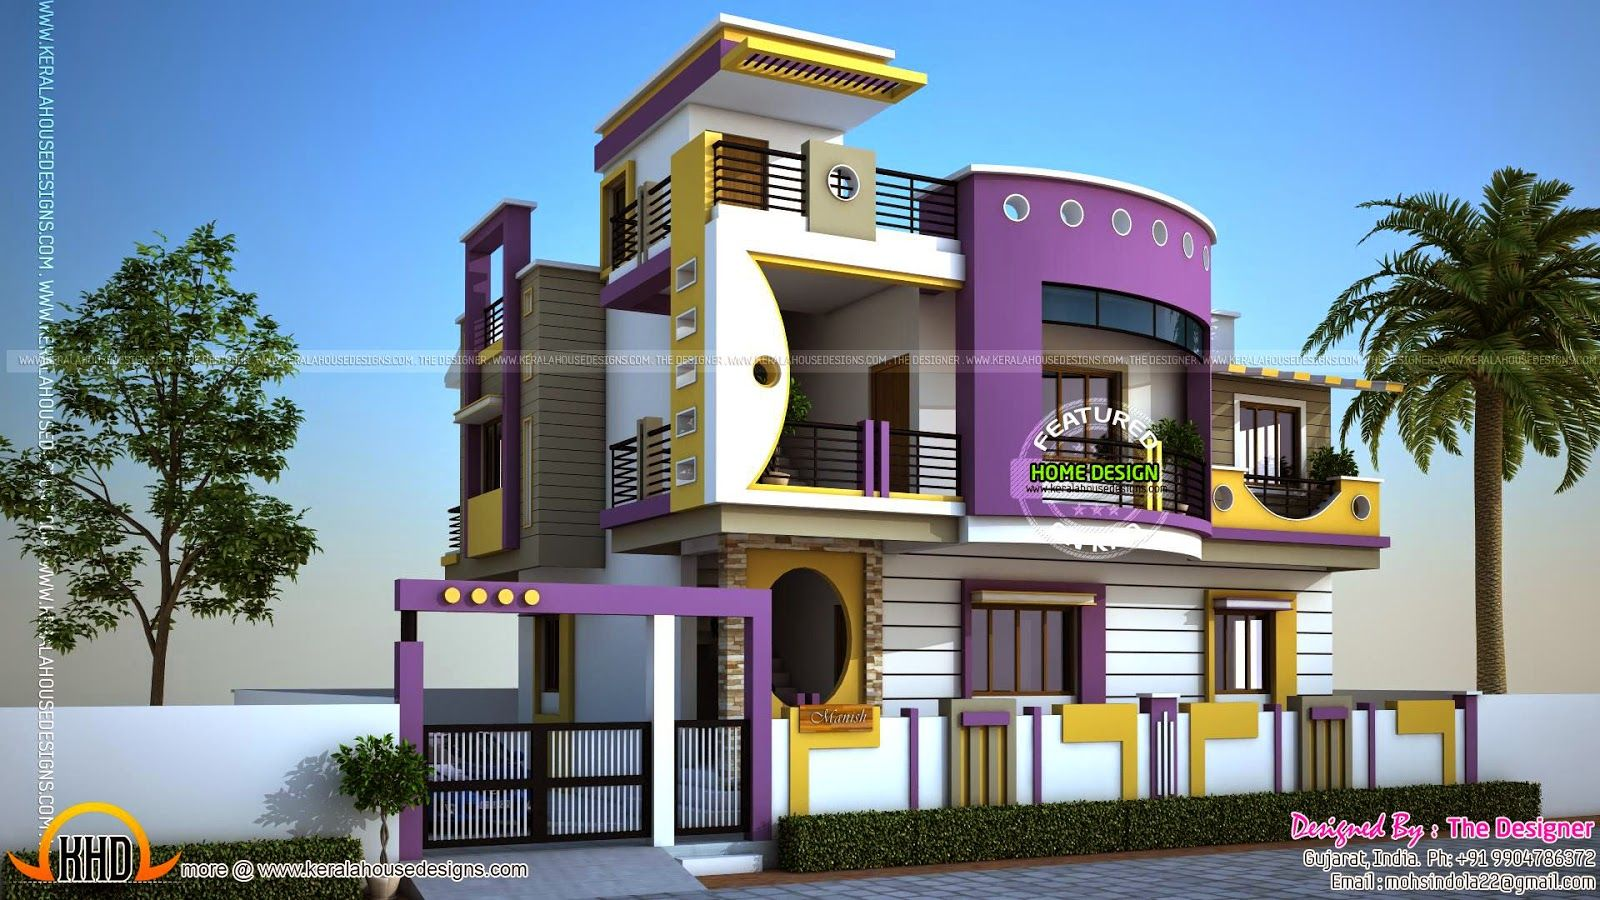 Home Exterior Design Images In India Trendecors